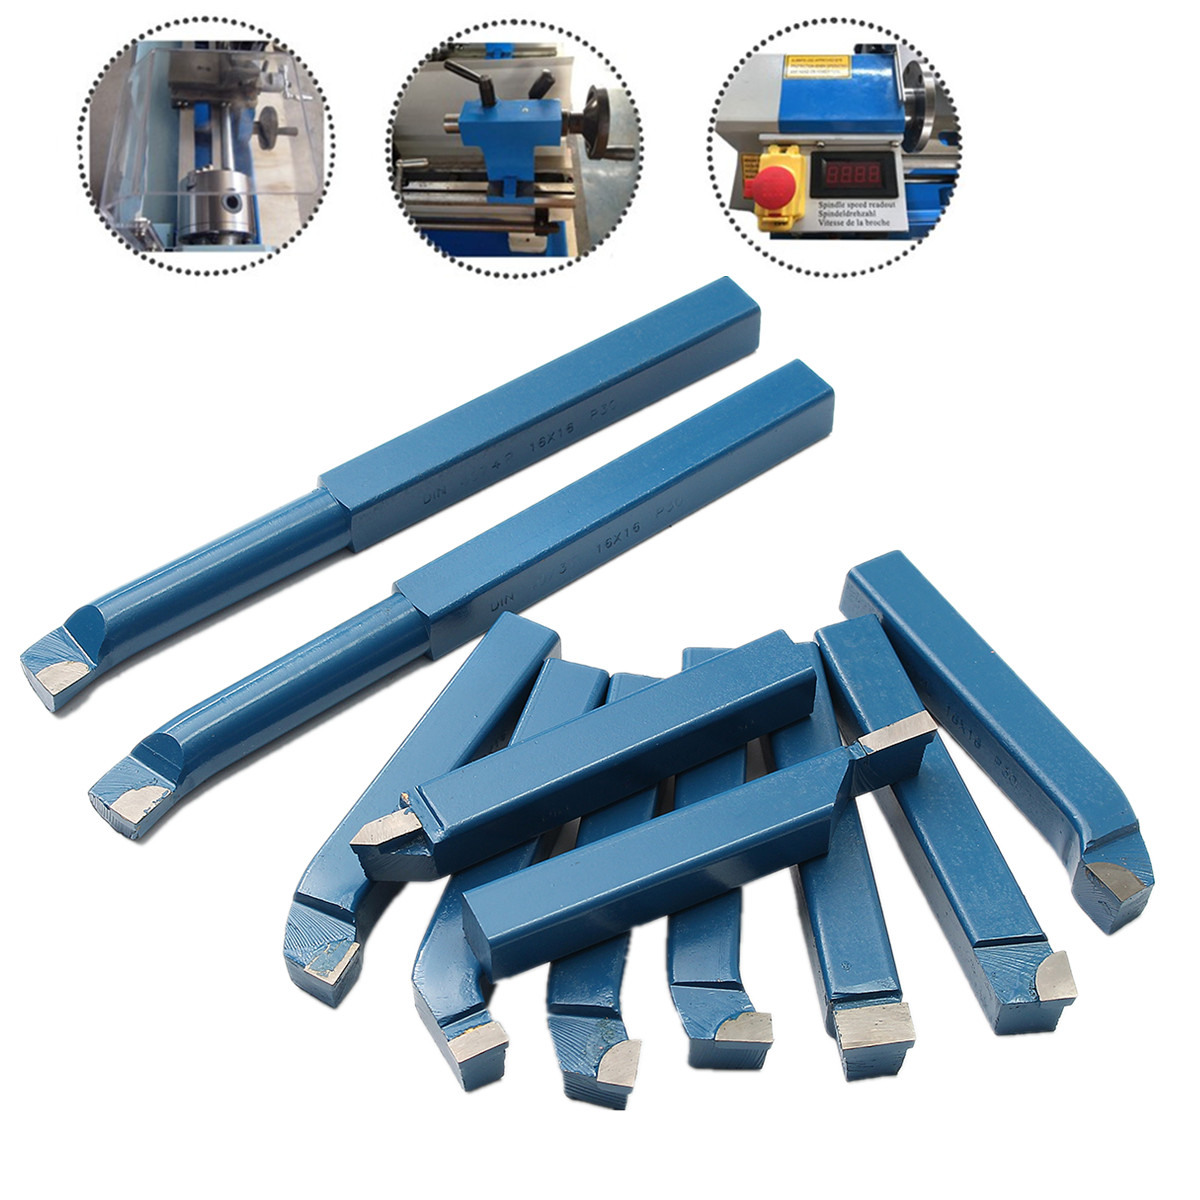 11PCS 10mm(3/8) Carbide Tip Cutting Turning Boring Bit Mini Metal Lathe Tool Set Carbide + Steel for Metal Working Lathe thread11PCS 10mm(3/8) Carbide Tip Cutting Turning Boring Bit Mini Metal Lathe Tool Set Carbide + Steel for Metal Working Lathe thread